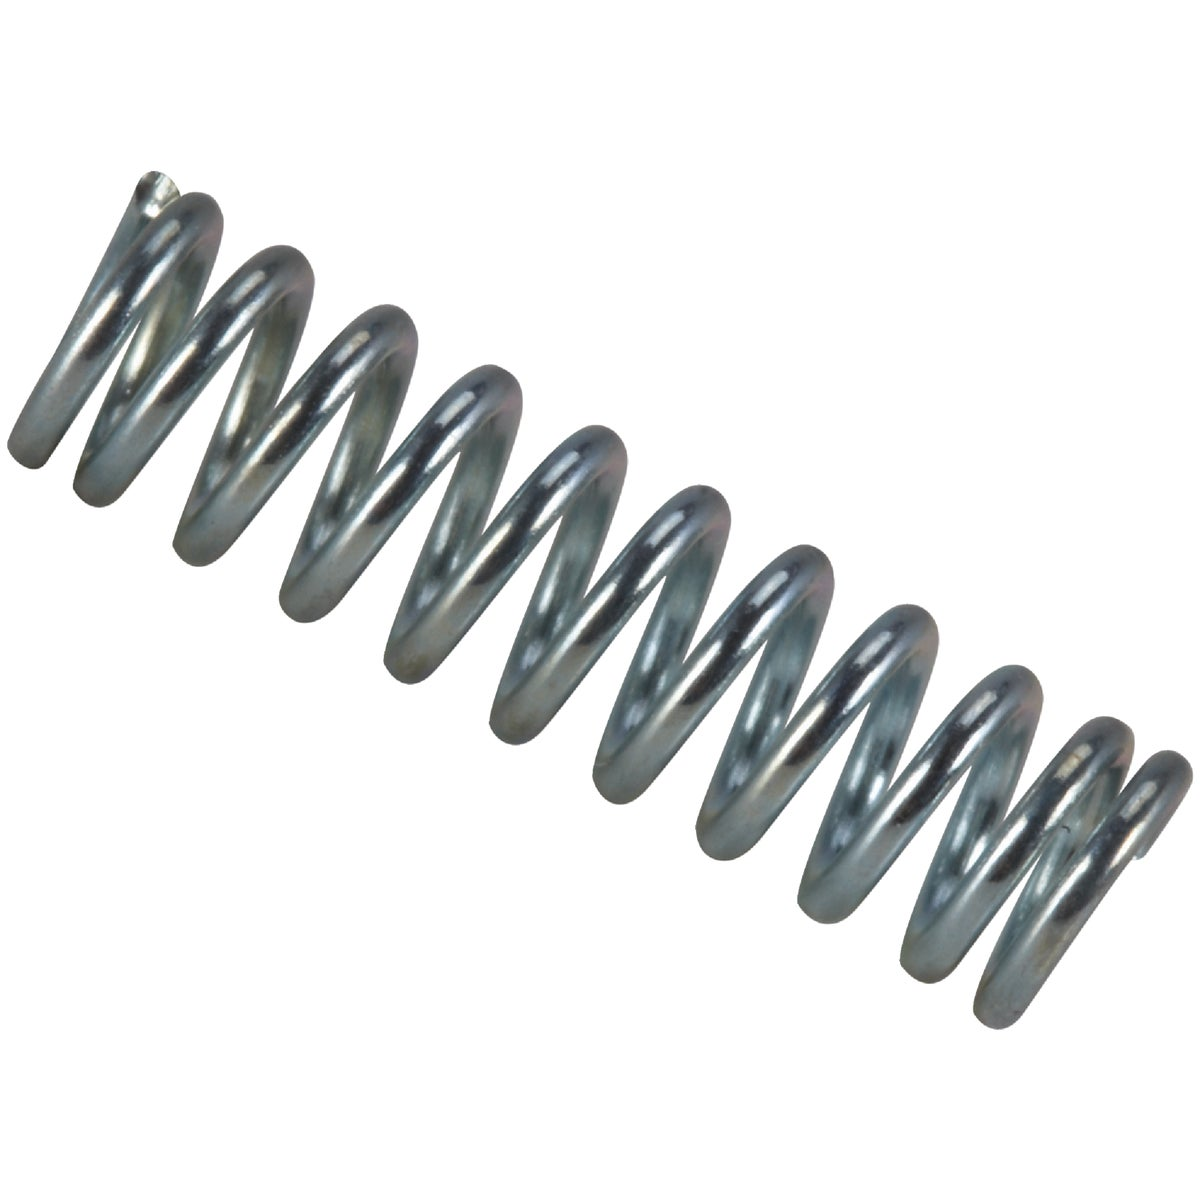 COMPRESSION SPRING - C-578 by Century Spring Corp